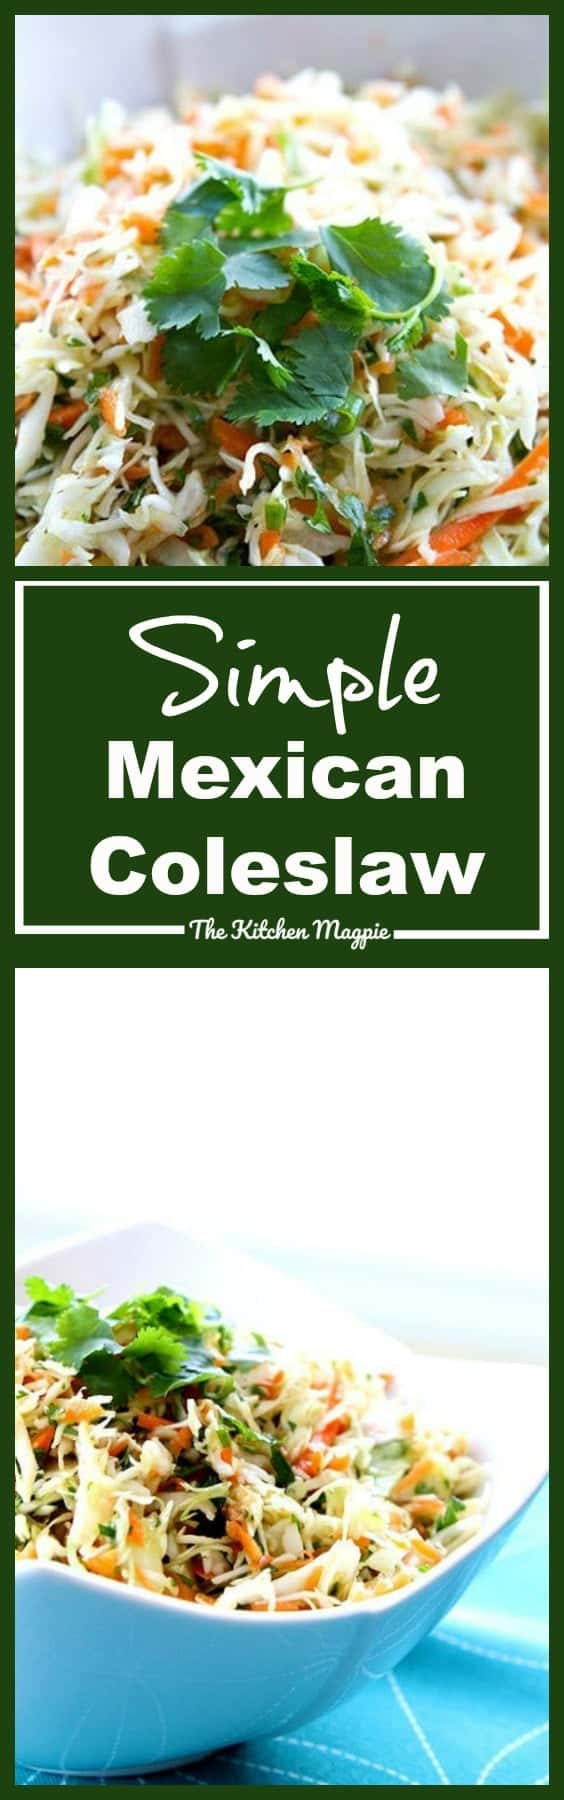 How to Make Simple Mexican Coleslaw from @kitchenmagpie